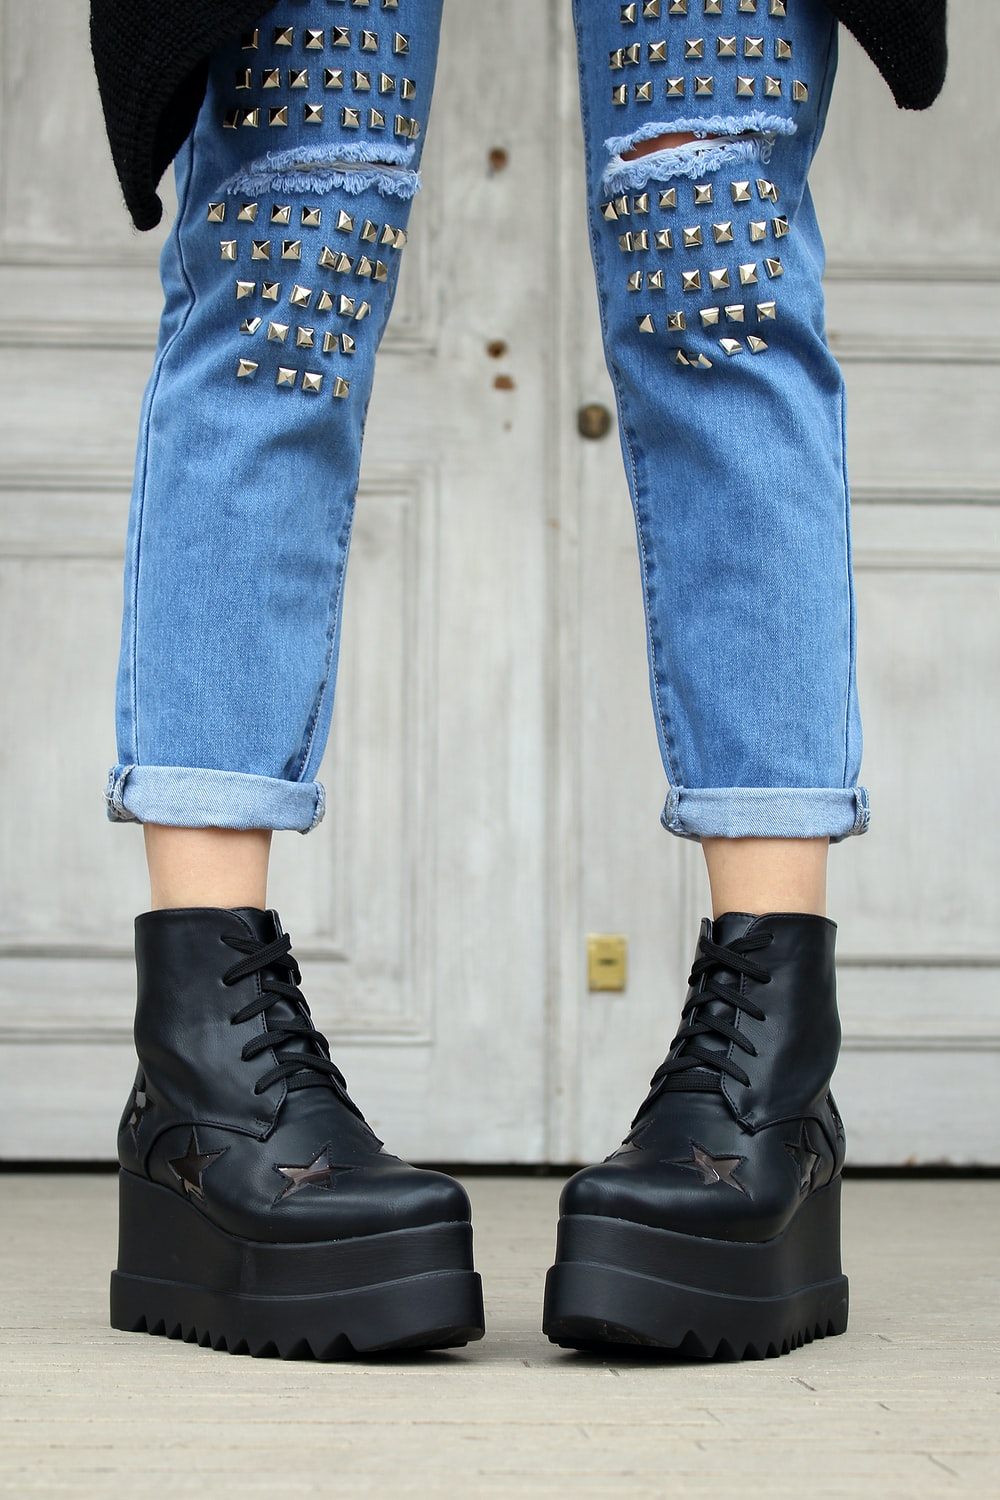 person in blue denim distressed jeans and black platform boots